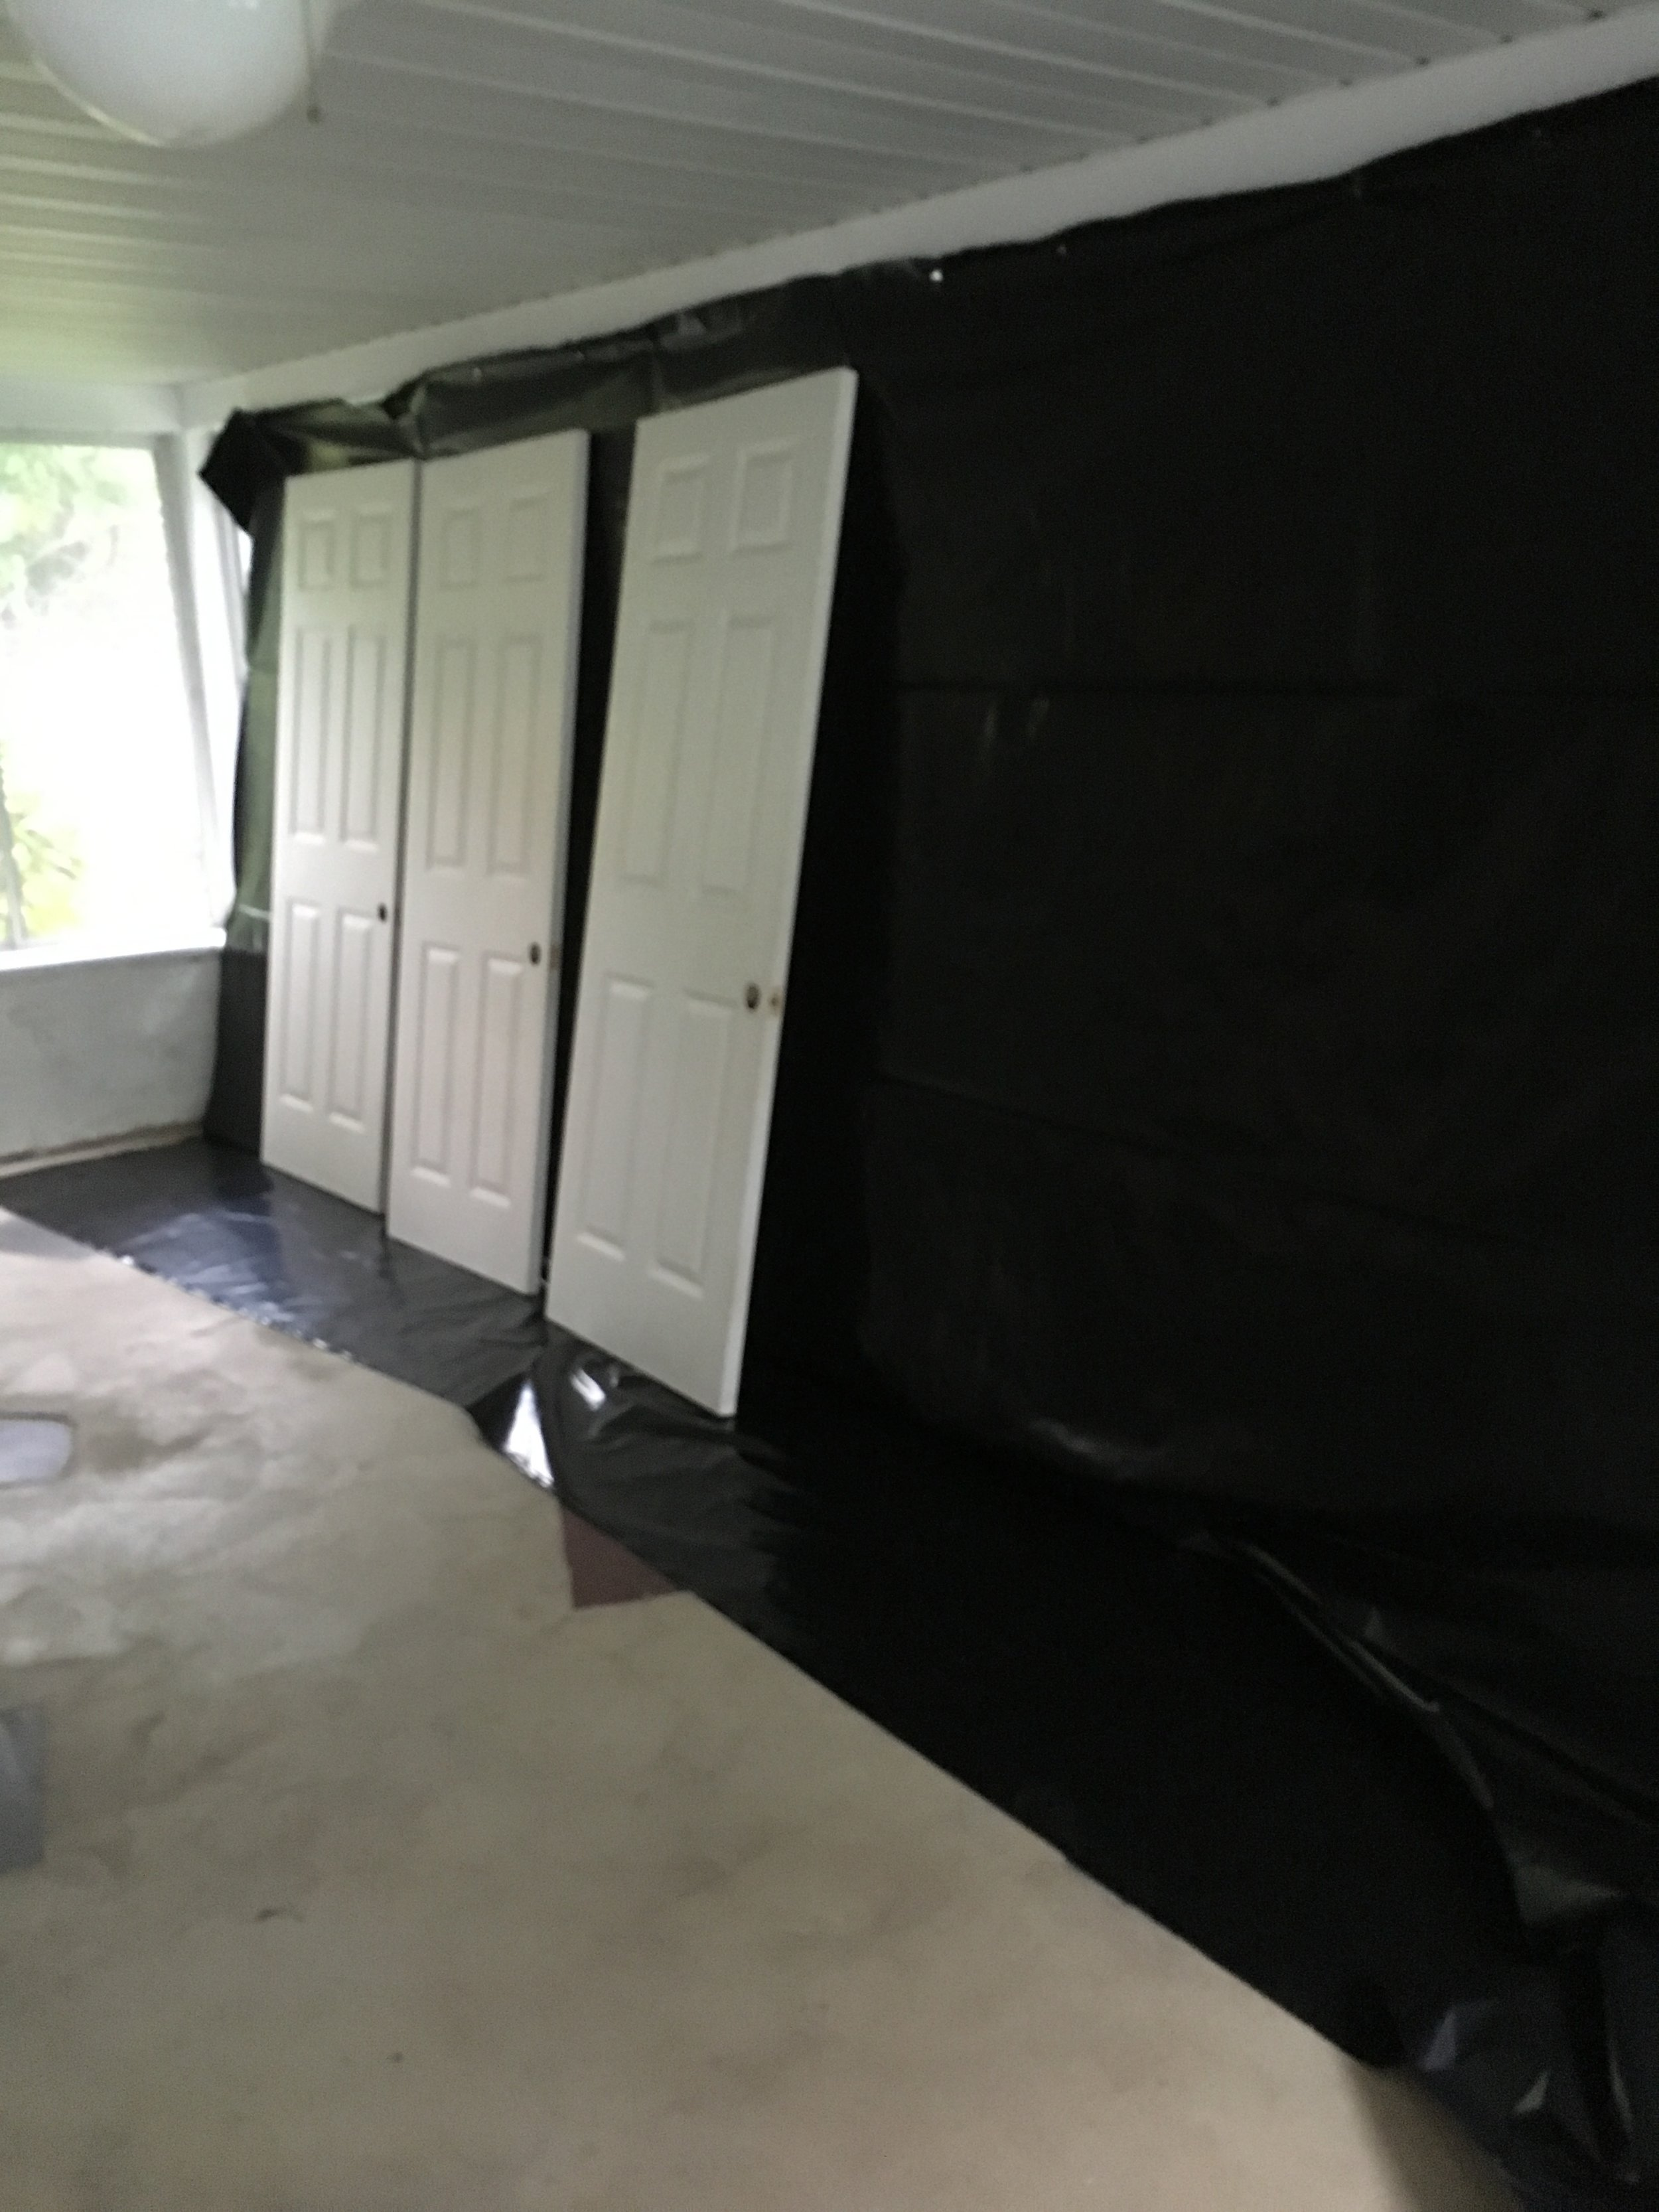 I was worried what the neighbors would think of us...from the outside it looked like we were making a black dungeon!! In reality, we were just trying not to inhale the paint fumes from the paint sprayer. You can see more of what the original floor looked like in this picture too.